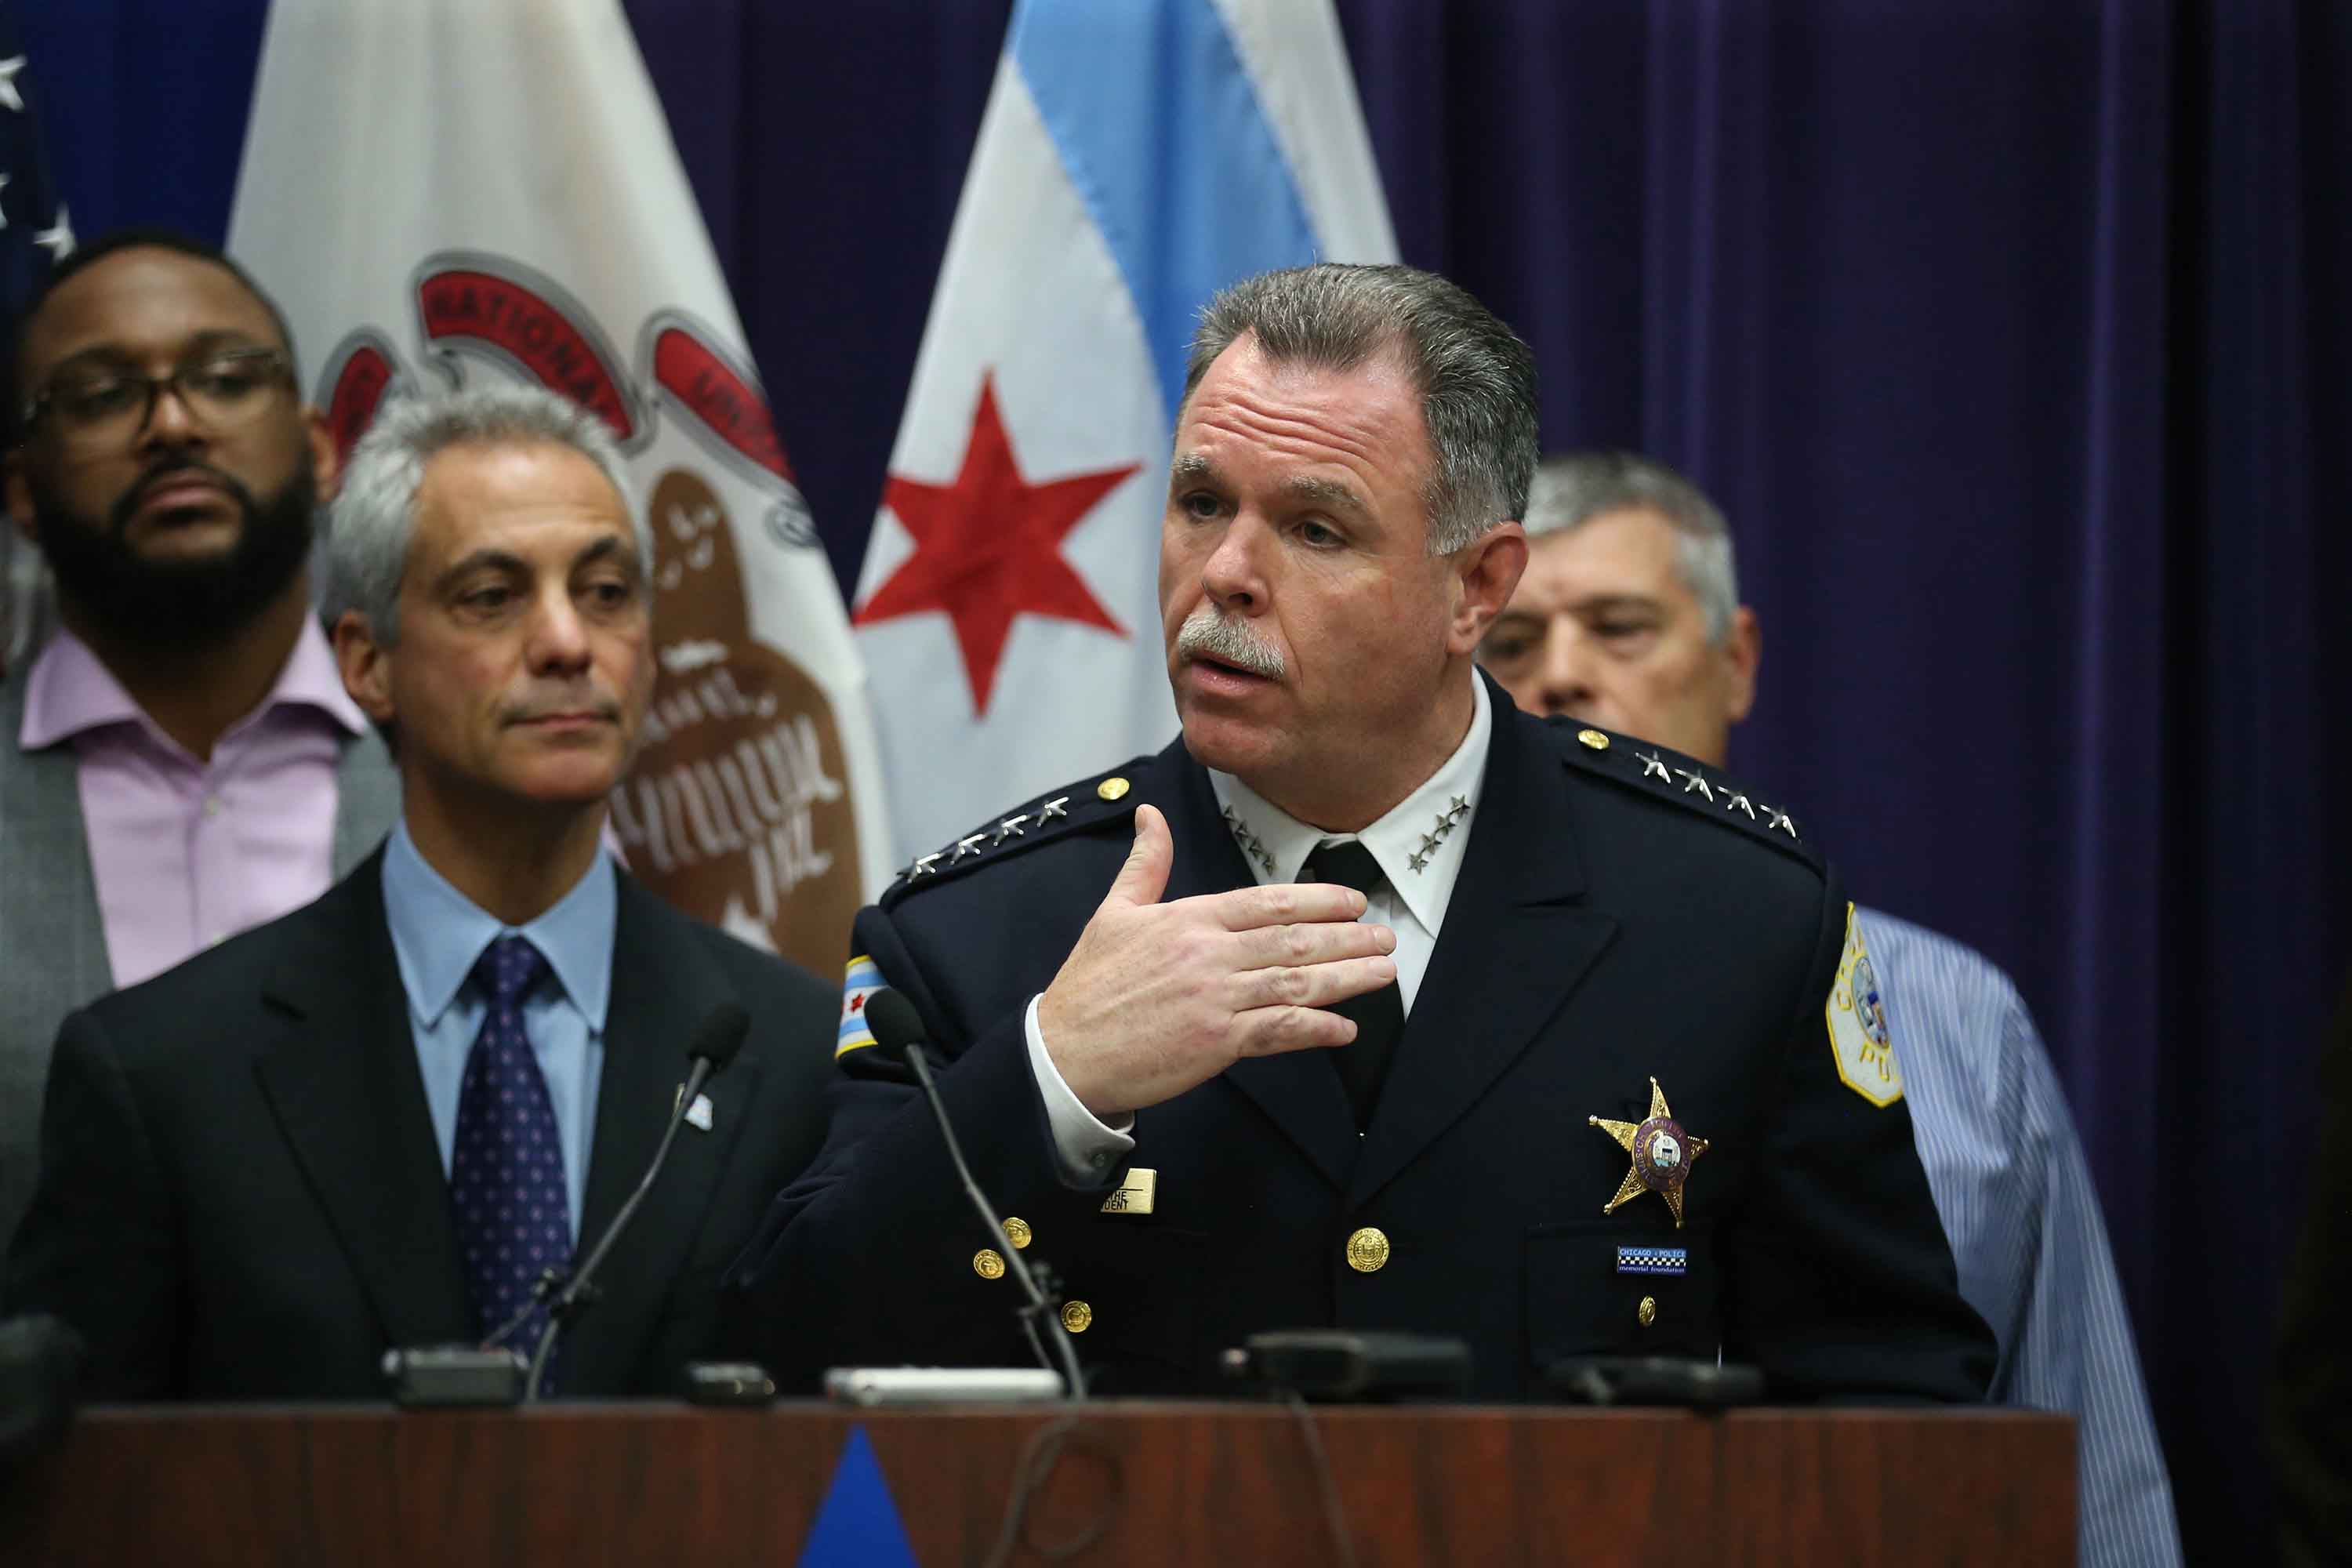 Mayor Rahm Emanuel and then-Chicago Police Supt. Garry McCarthy hold a news conference at Chicago Police Headquarters in Chicago on Tuesday, Nov. 24, 2015. Emanuel later dismissed McCarthy, citing a lack of public trust in police leadership in the wake of the Laquan McDonald shooting. (Nuccio DiNuzzo/Chicago Tribune/TNS)